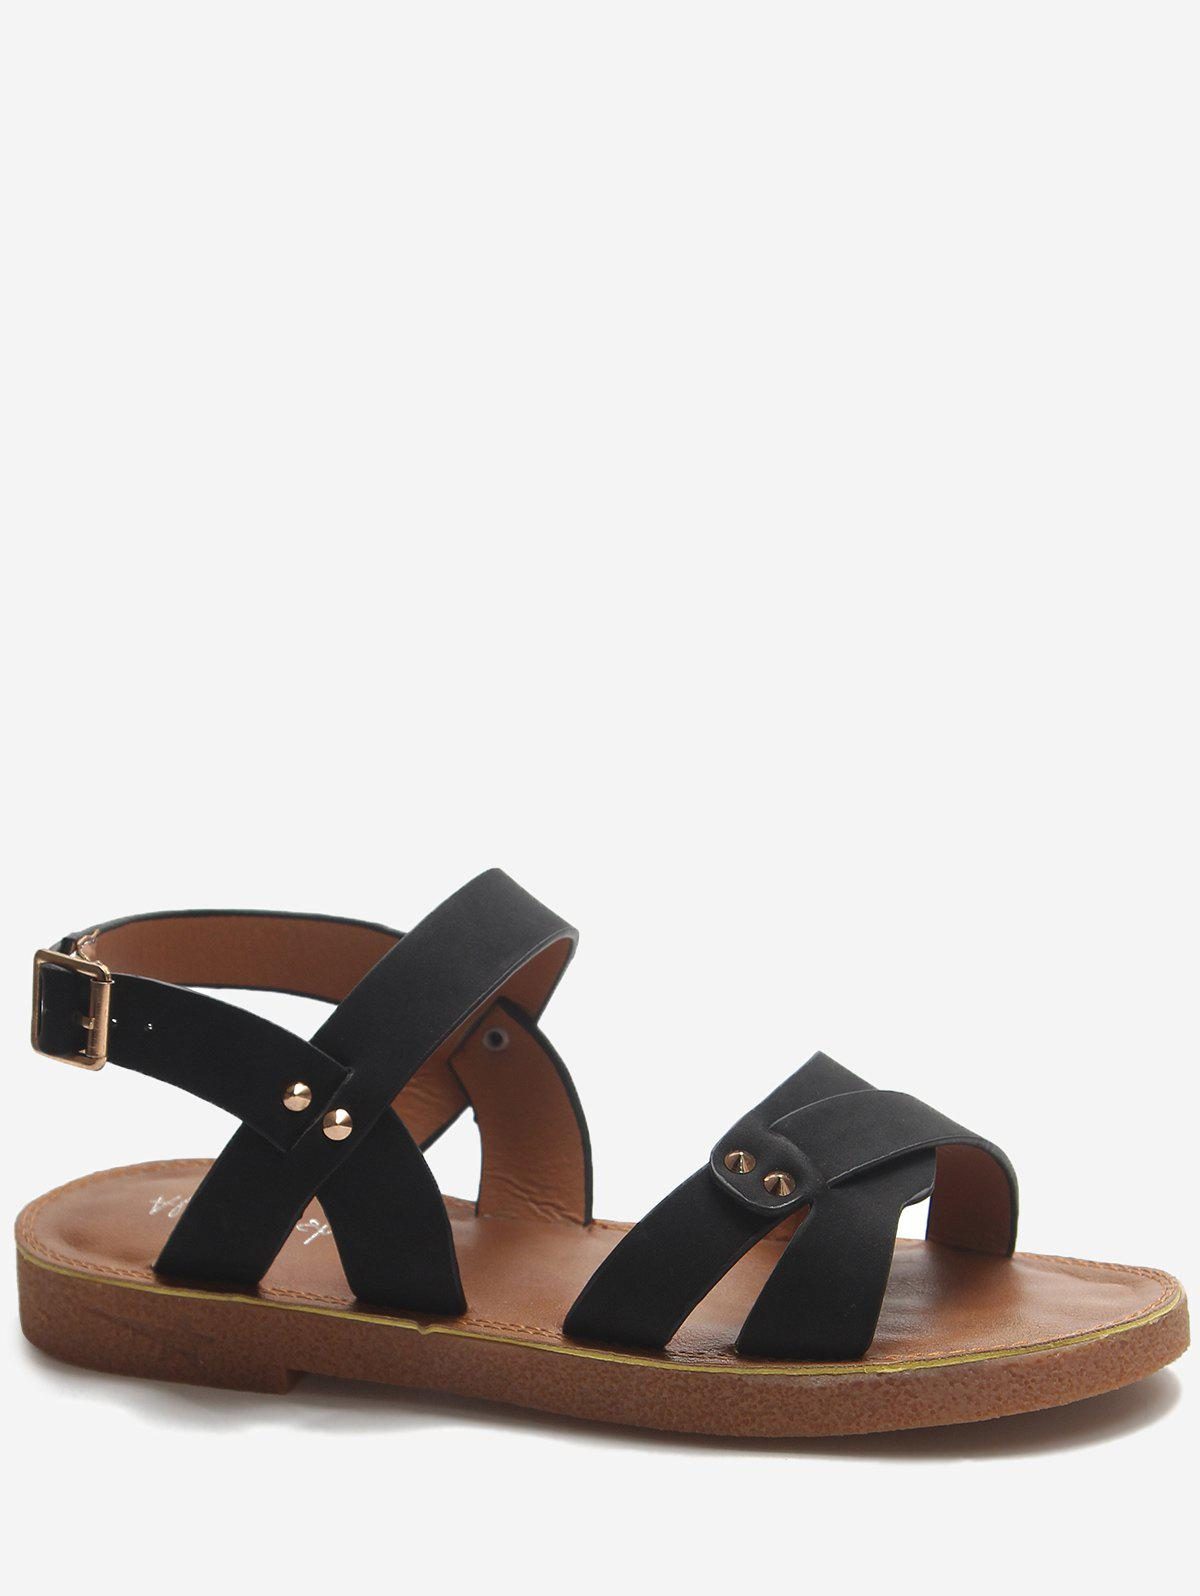 Trendy Low Heel Buckle Strap Crisscross Sandals